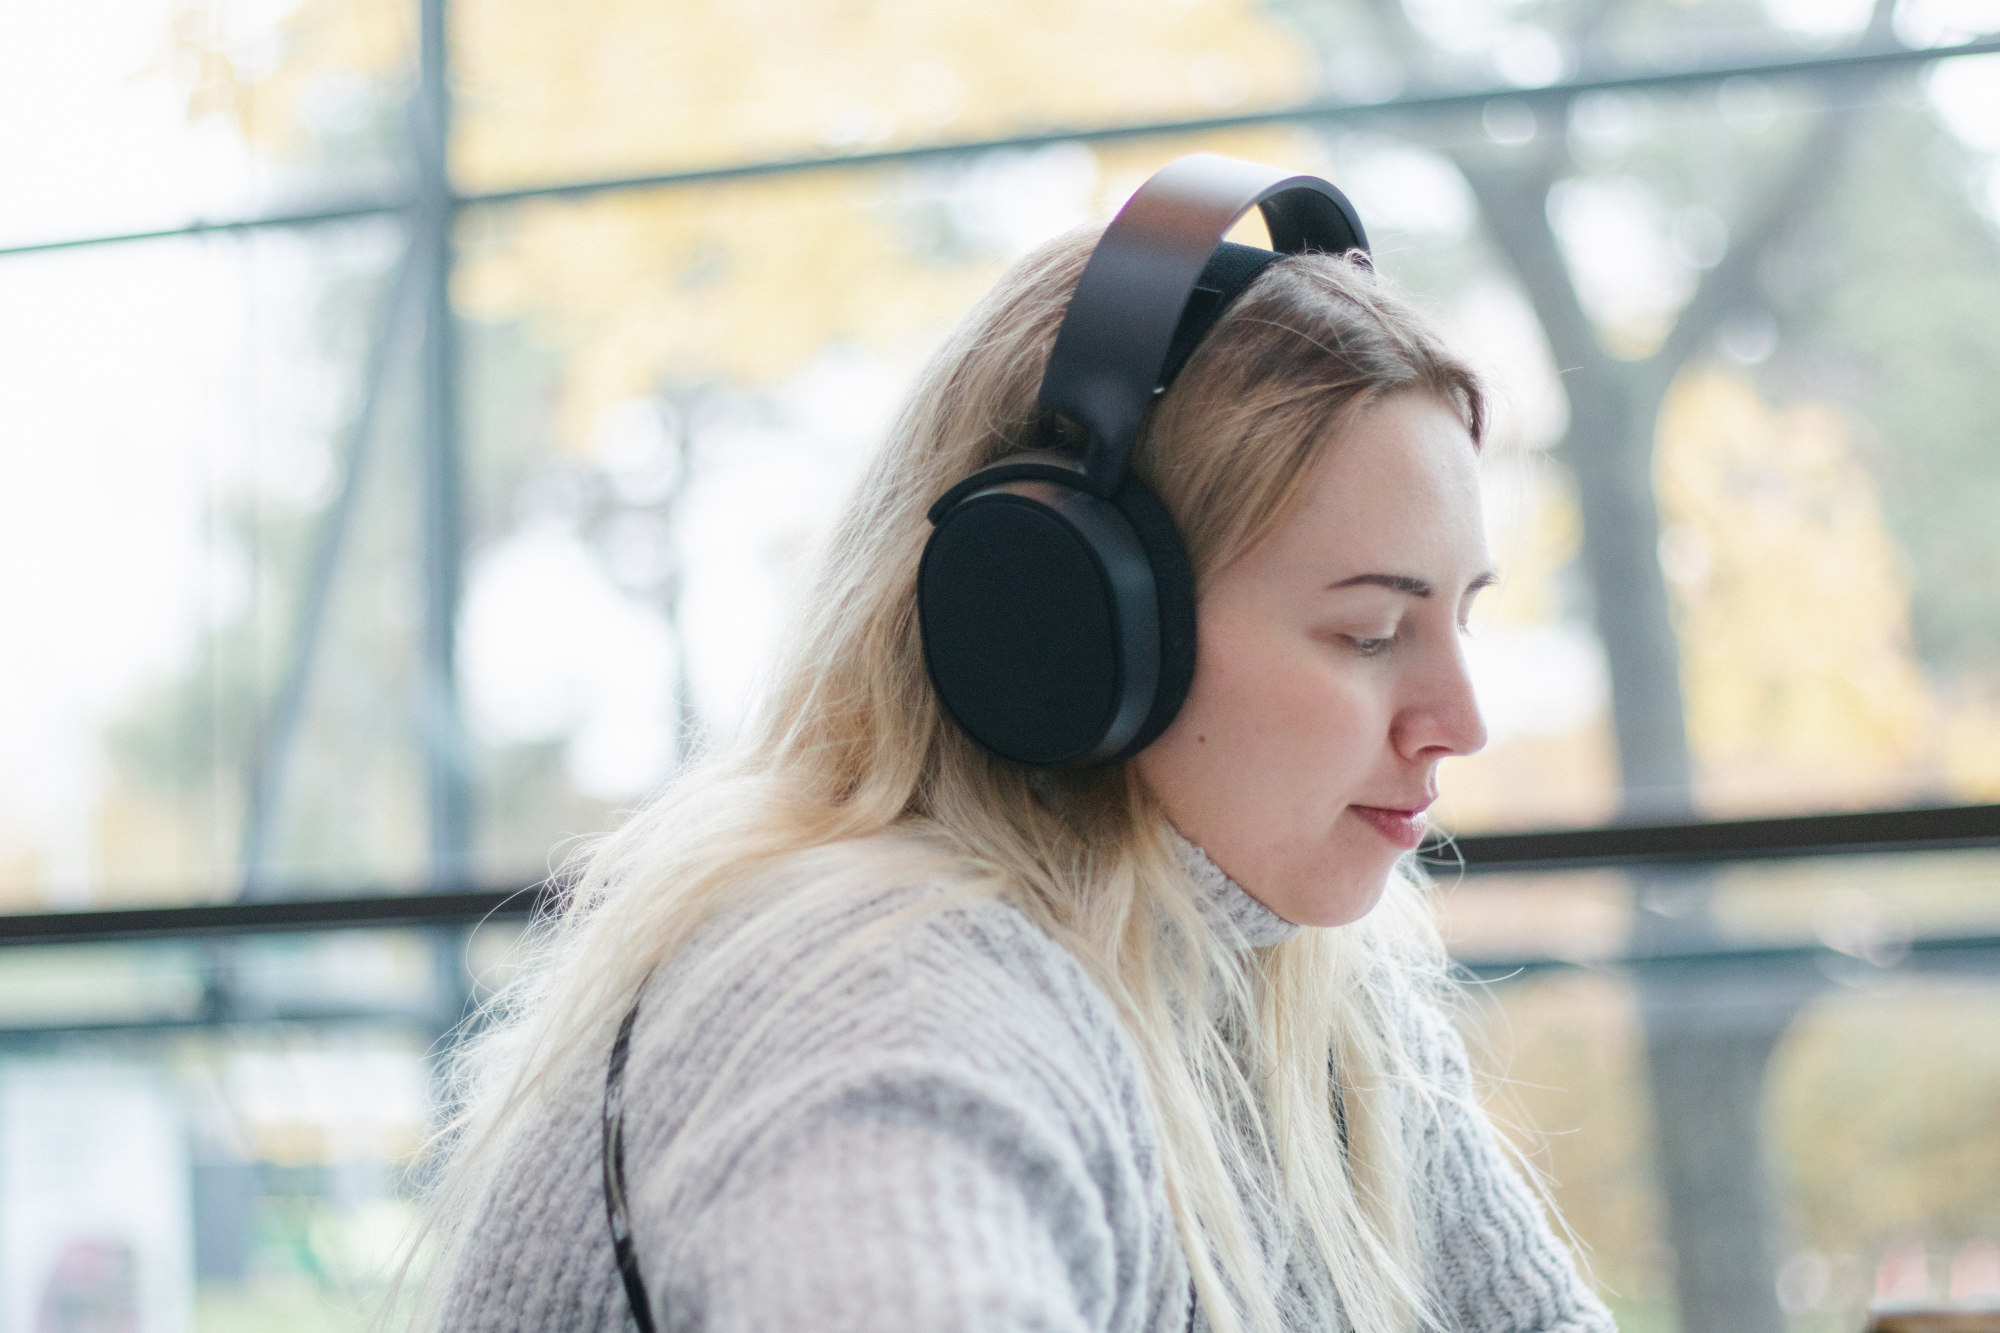 A person with headphones on